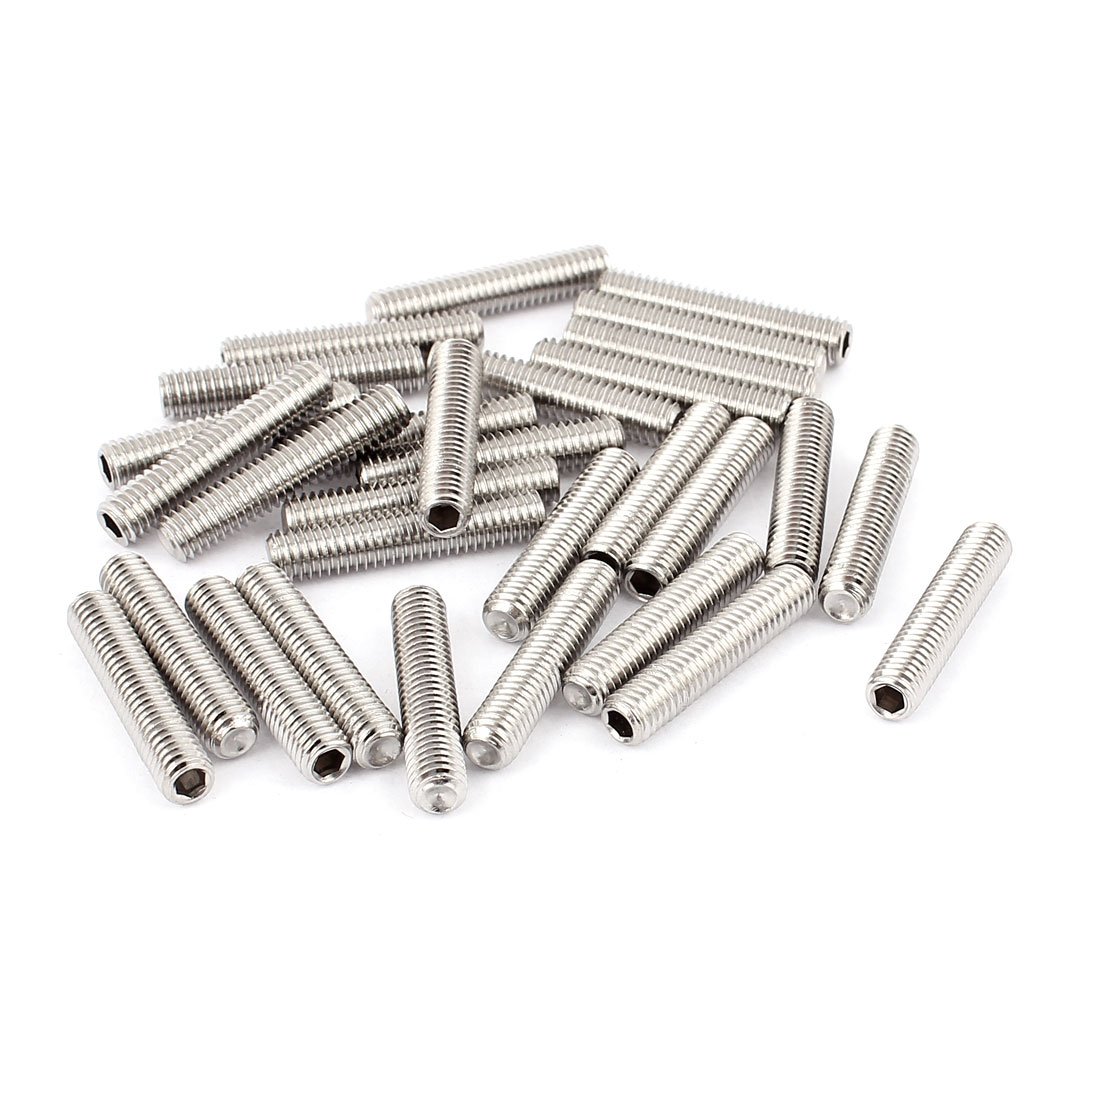 M6x30mm Stainless Steel Hex Socket Set Cap Point Grub Screws Silver Tone 30Pcs